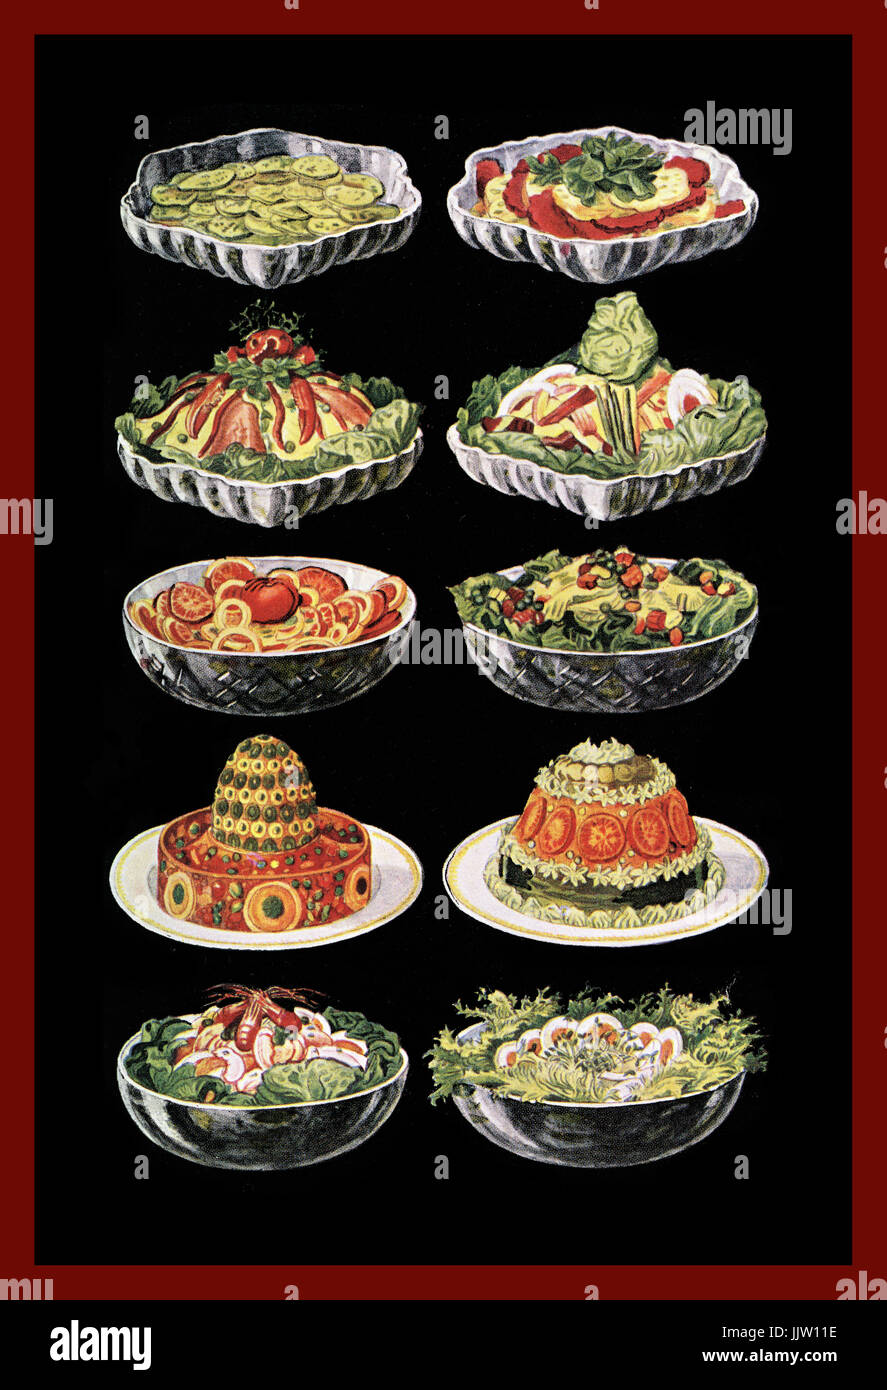 1950s Dinner Party Stock Photos & 1950s Dinner Party Stock